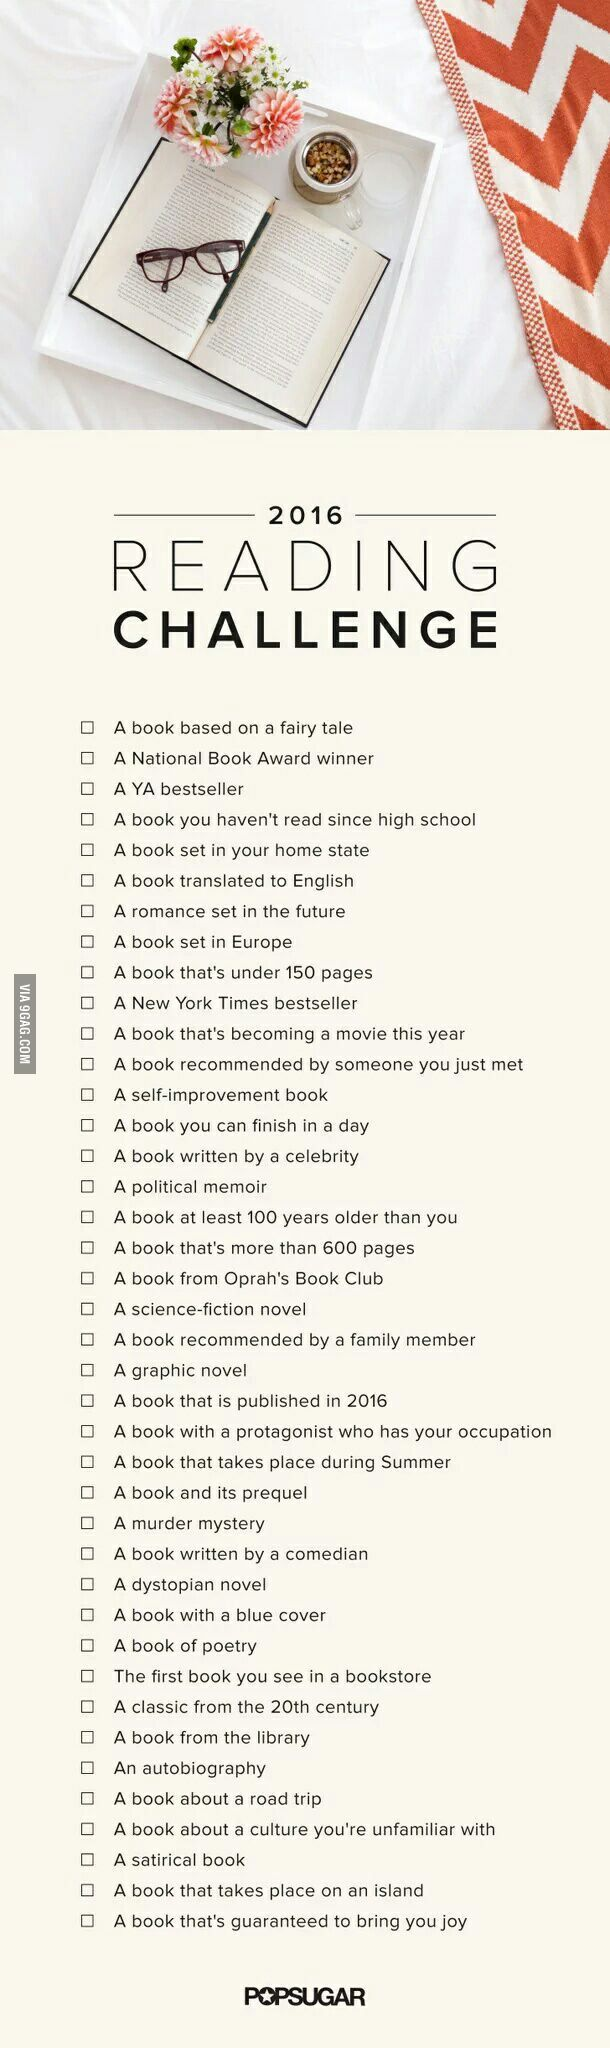 Cause reading is FUNDAMENTAL! - 9GAG  The book reading challenge!!